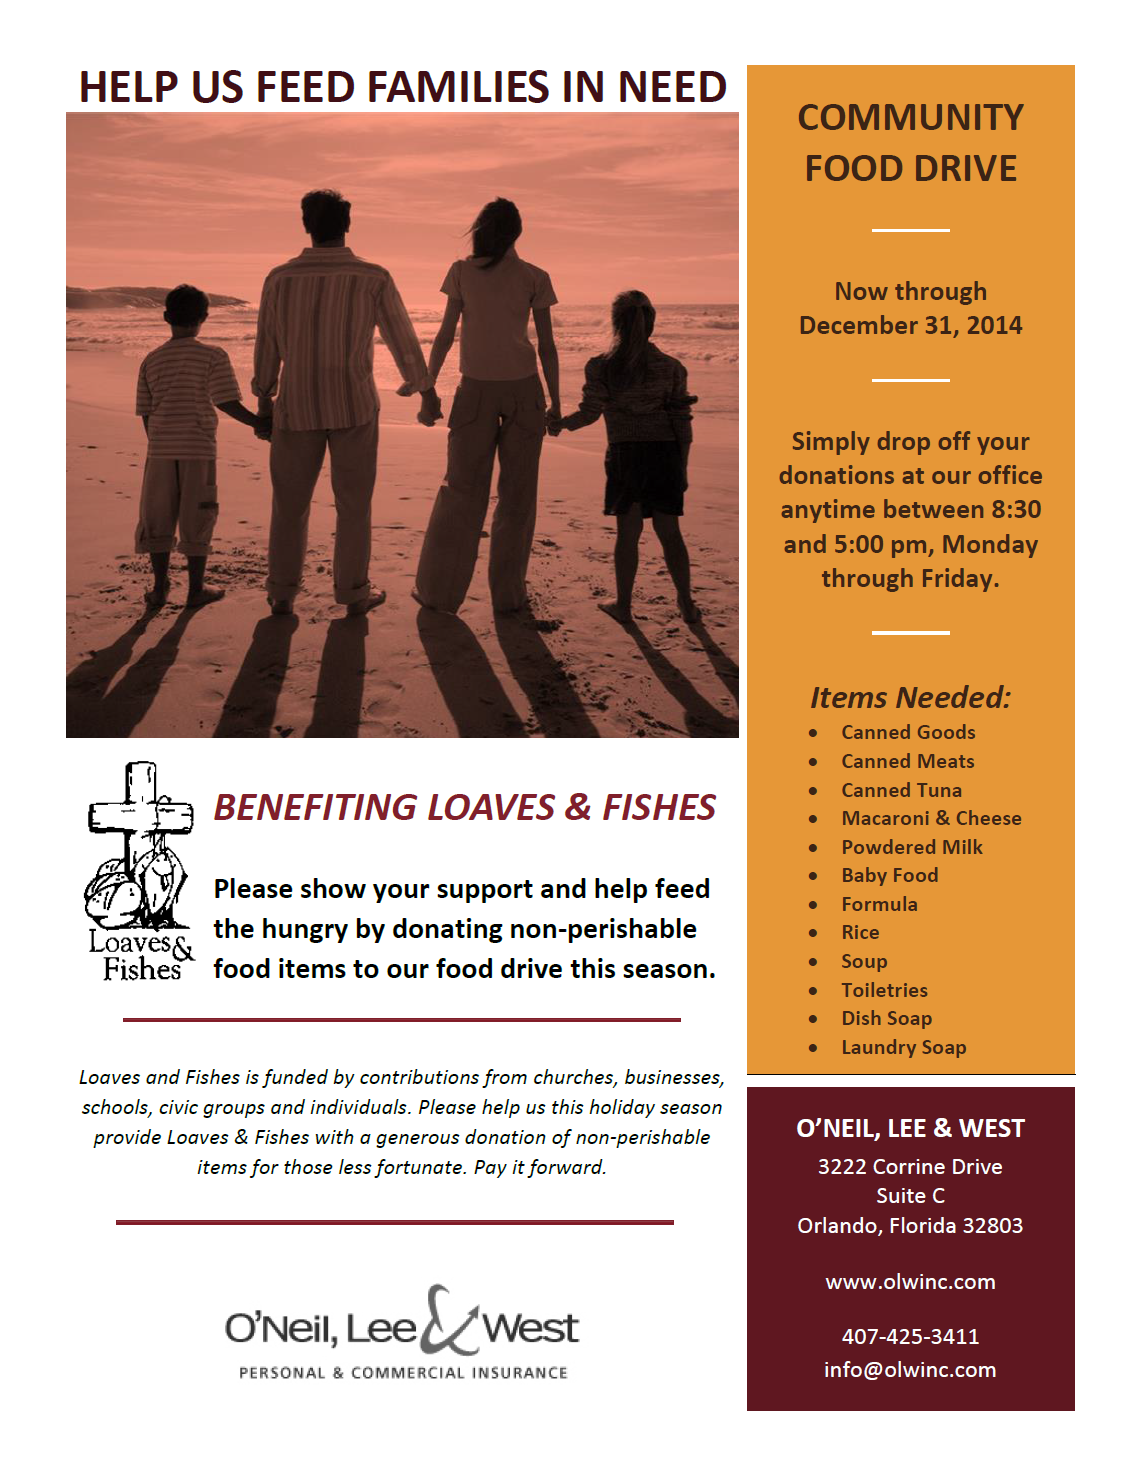 OLW Food Drive Flyer 2014